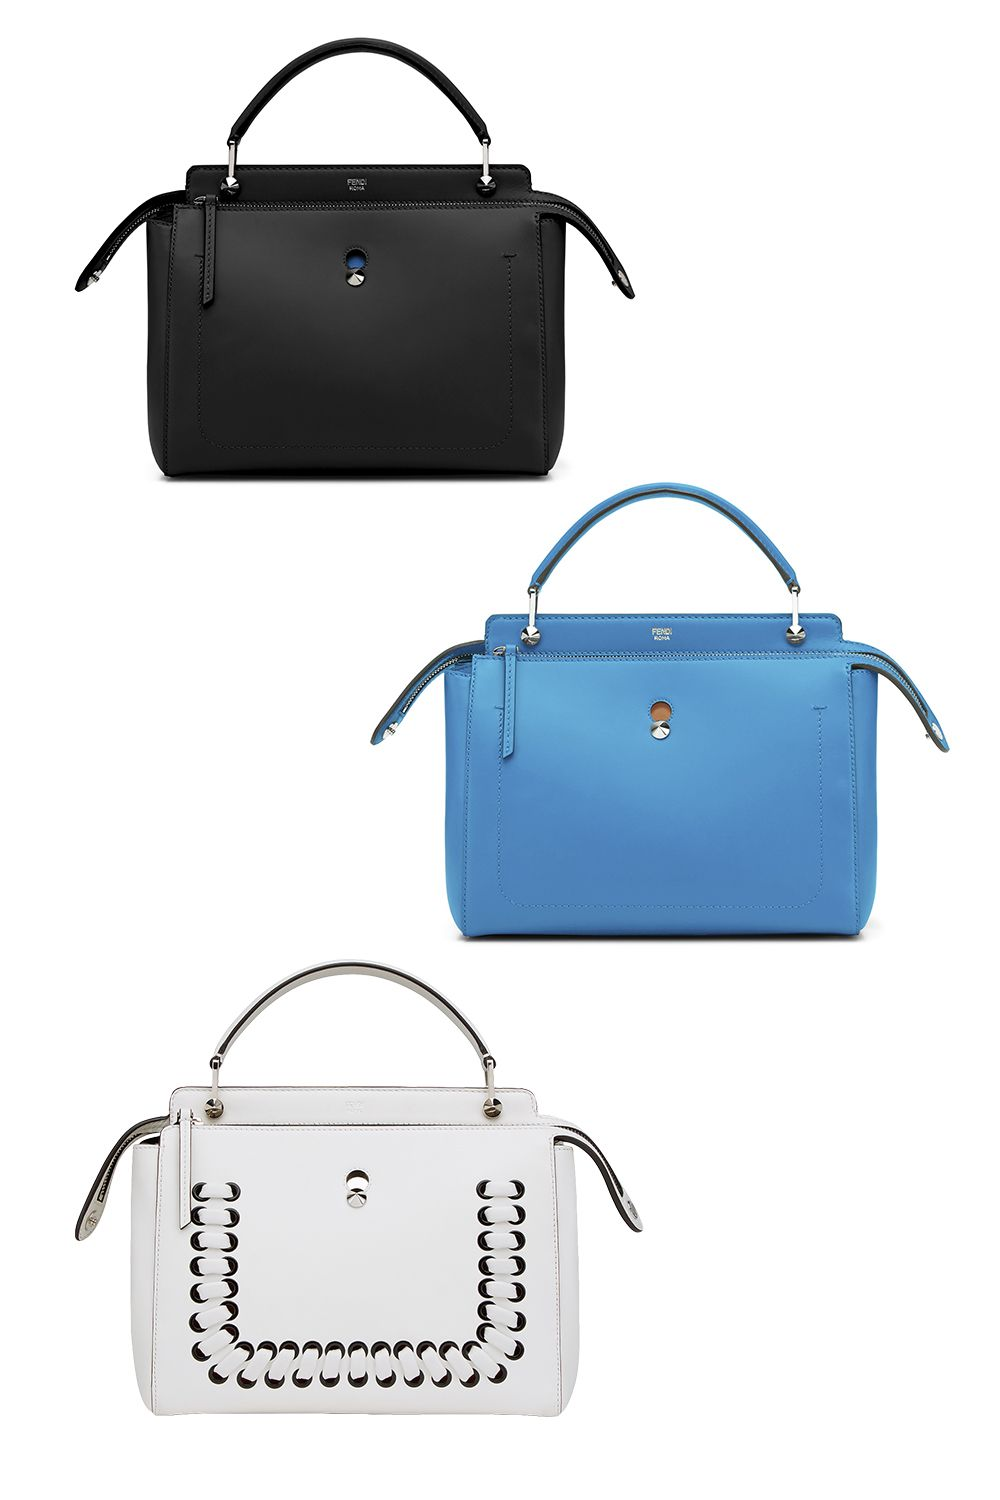 "<p><strong>Designer: </strong>Fendi</p><p><strong>Style: </strong>Dotcom</p><p><strong>Introduced in:  </strong>Resort 2015</p><p><strong>Why <strong>it's worth investing in</strong>: </strong>Fendi is known for creating it-bags. From the infamous Baguette of Carrie Bradshaw fame, to the Spy of the aughties and the Peekaboo of the early 2010s, the Italian house has a knack for launching memorable accessories. Their latest, the Dotcom is noted for its wearable design and simple dot closure.  Unlike its predecessors, it's sleek structure makes it difficult to nail down the decade it belongs to—a true measure of longevity. Created with flexibility in mind, the front is also a detachable clutch meant to be worn in the evening.</p><p><a href=""http://www.fendi.com/us/"" target=""_blank""><i>The Dotcom retails for $2400 for the basic leather version</i></a><i></i></p>"